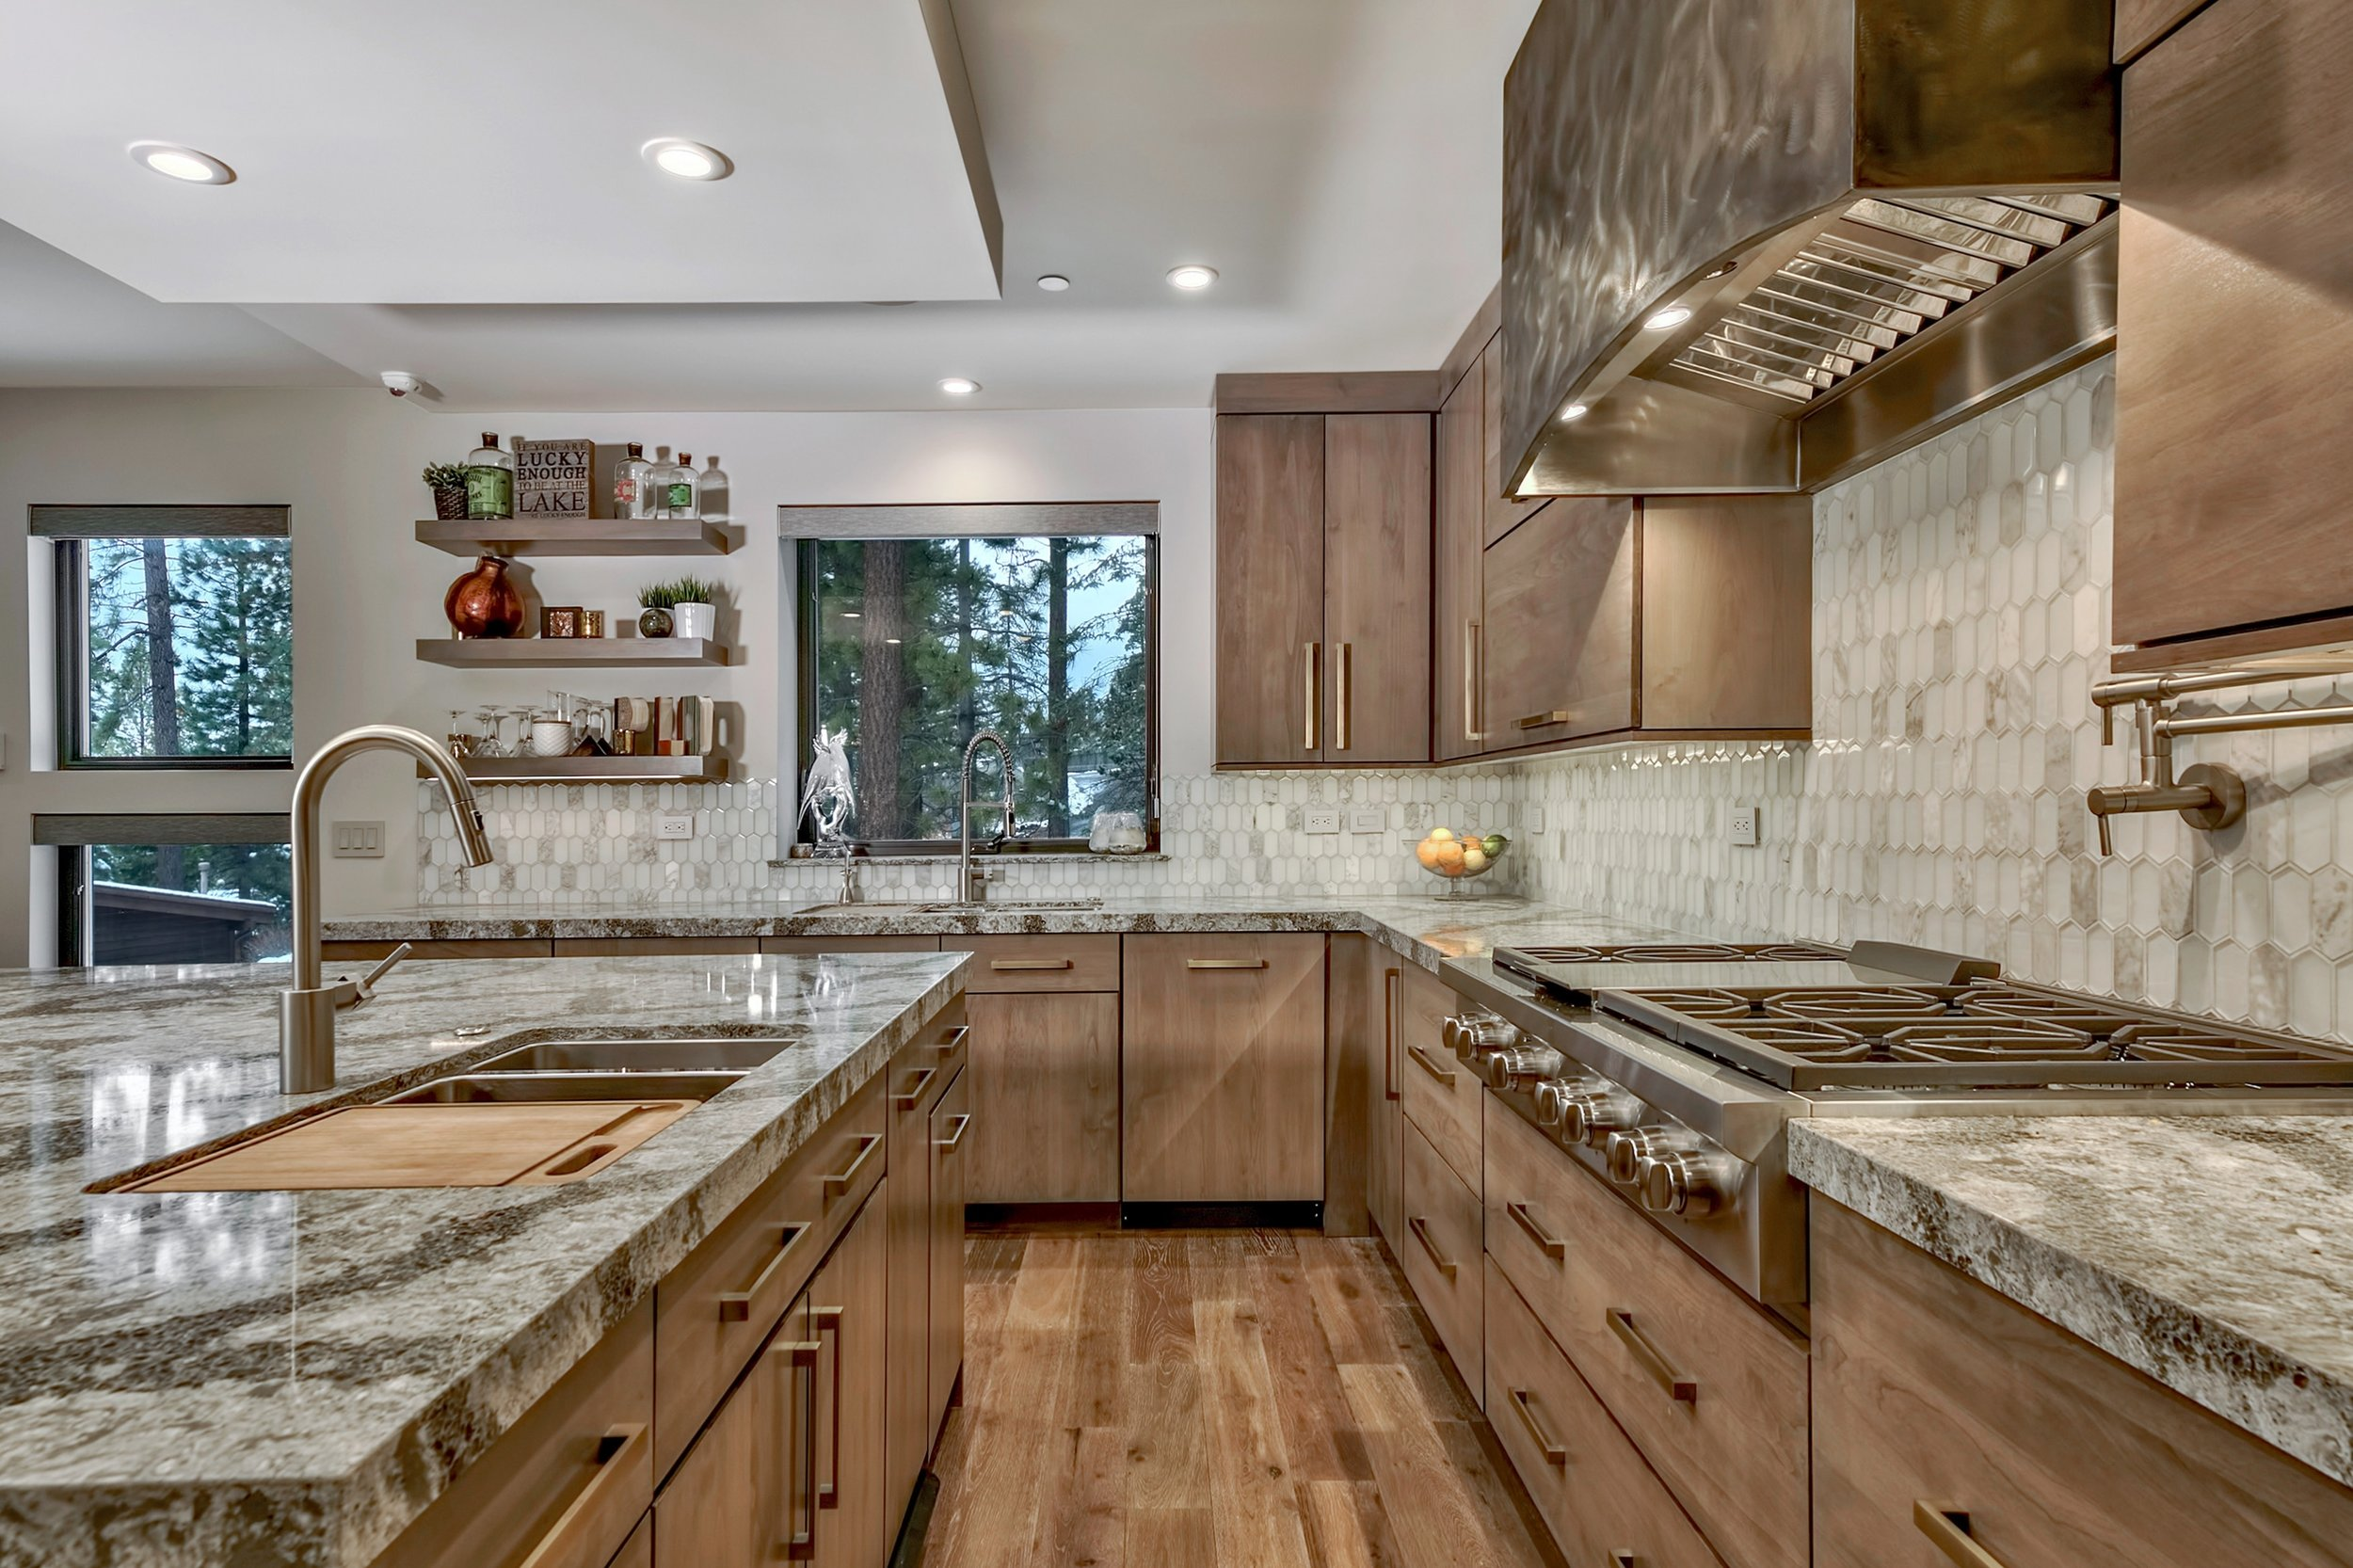 15 Lakeside Cove kitchen.jpg